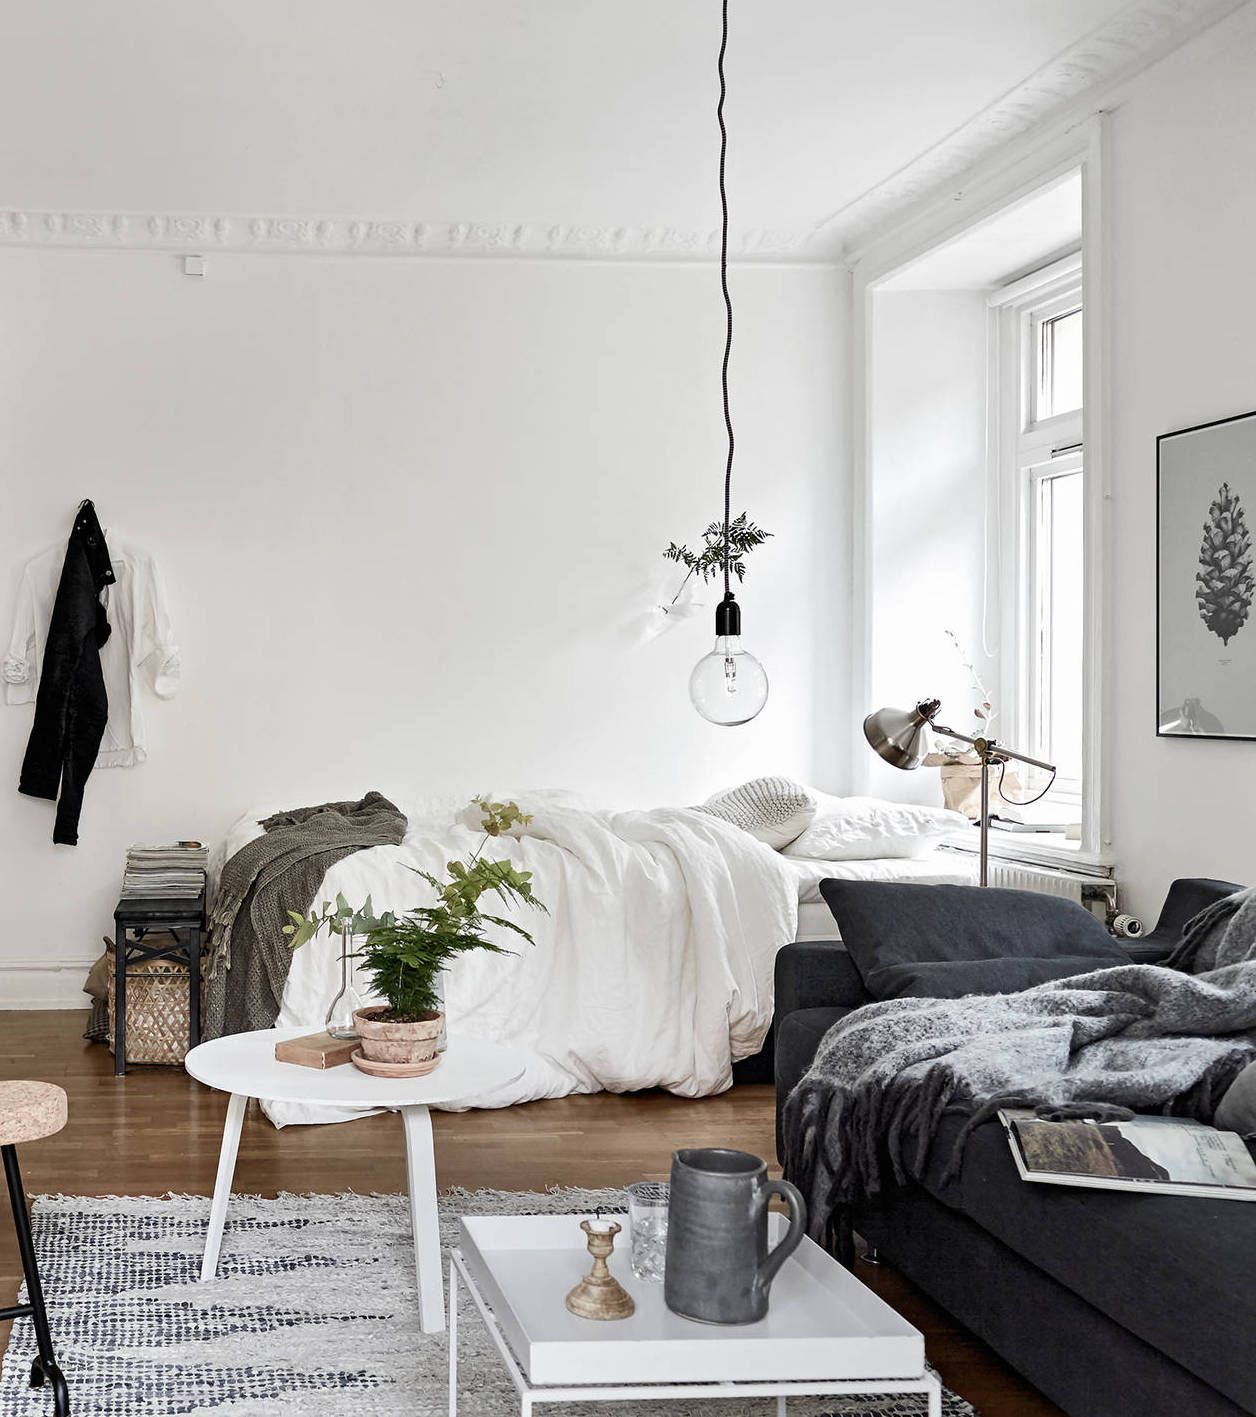 Cozy One Room Flat Via Cocolapinedesign More